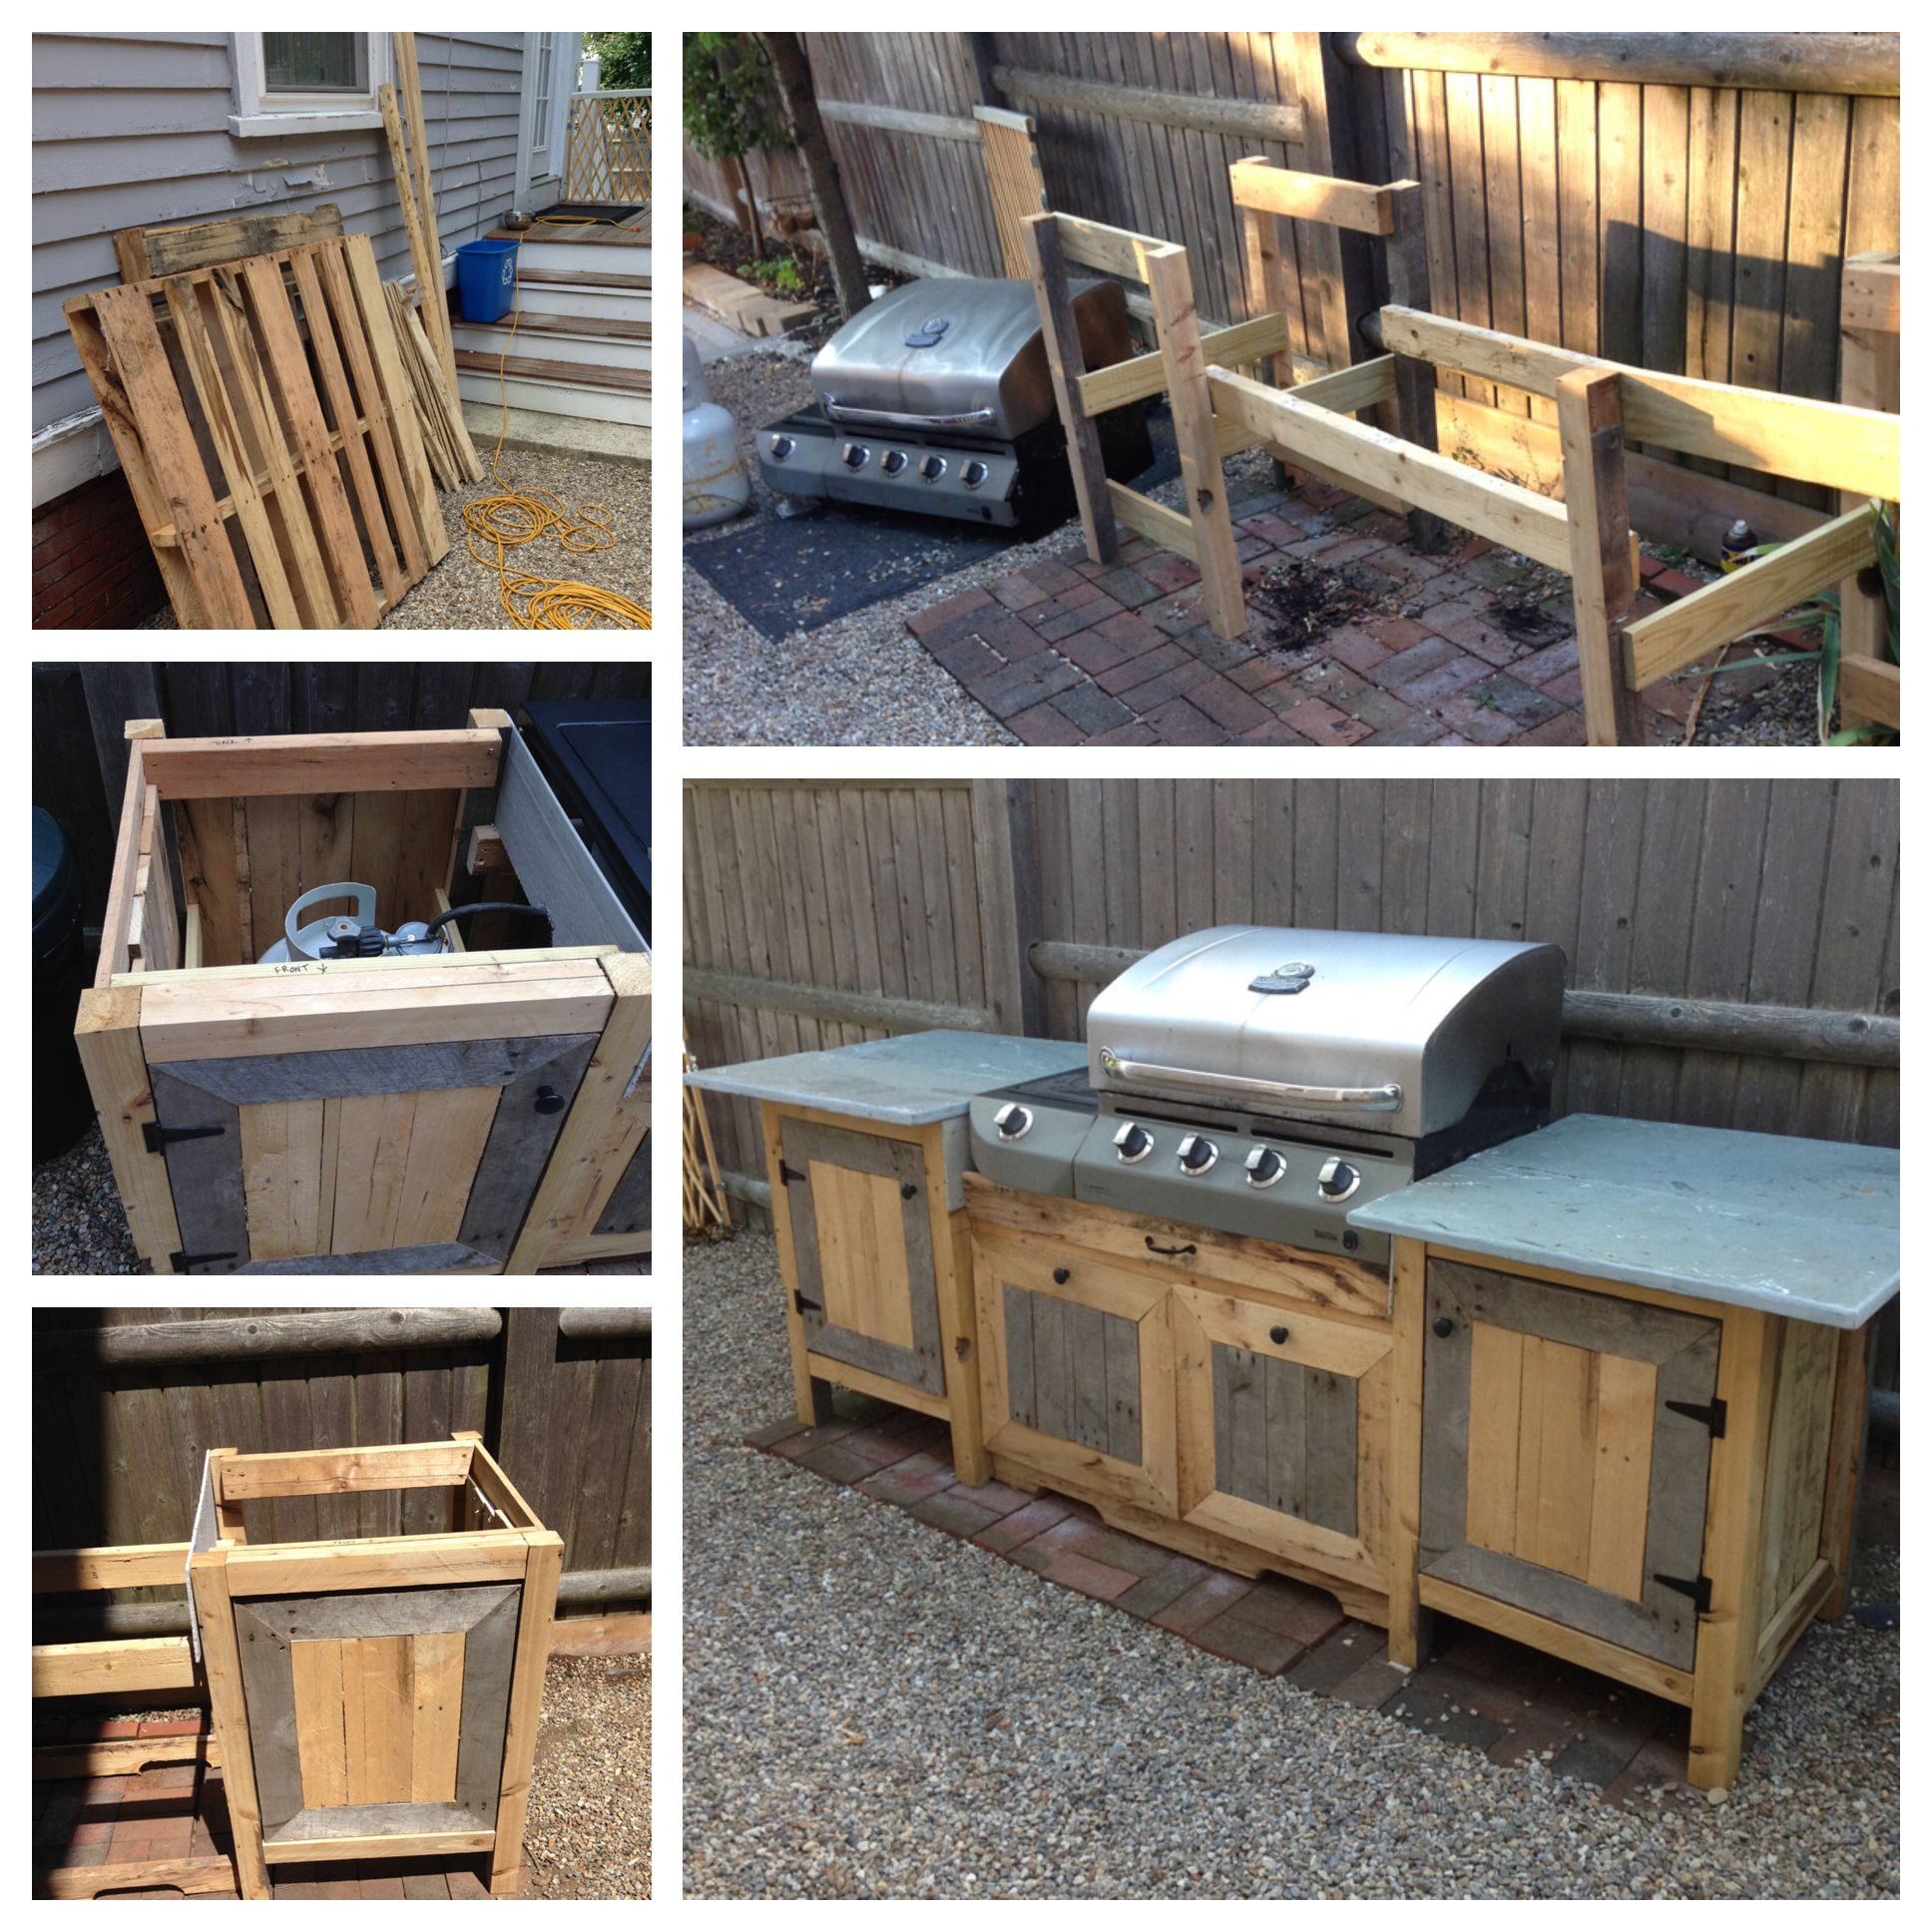 Outdoor kitchen made from pallets and upcycled bluestone total cost